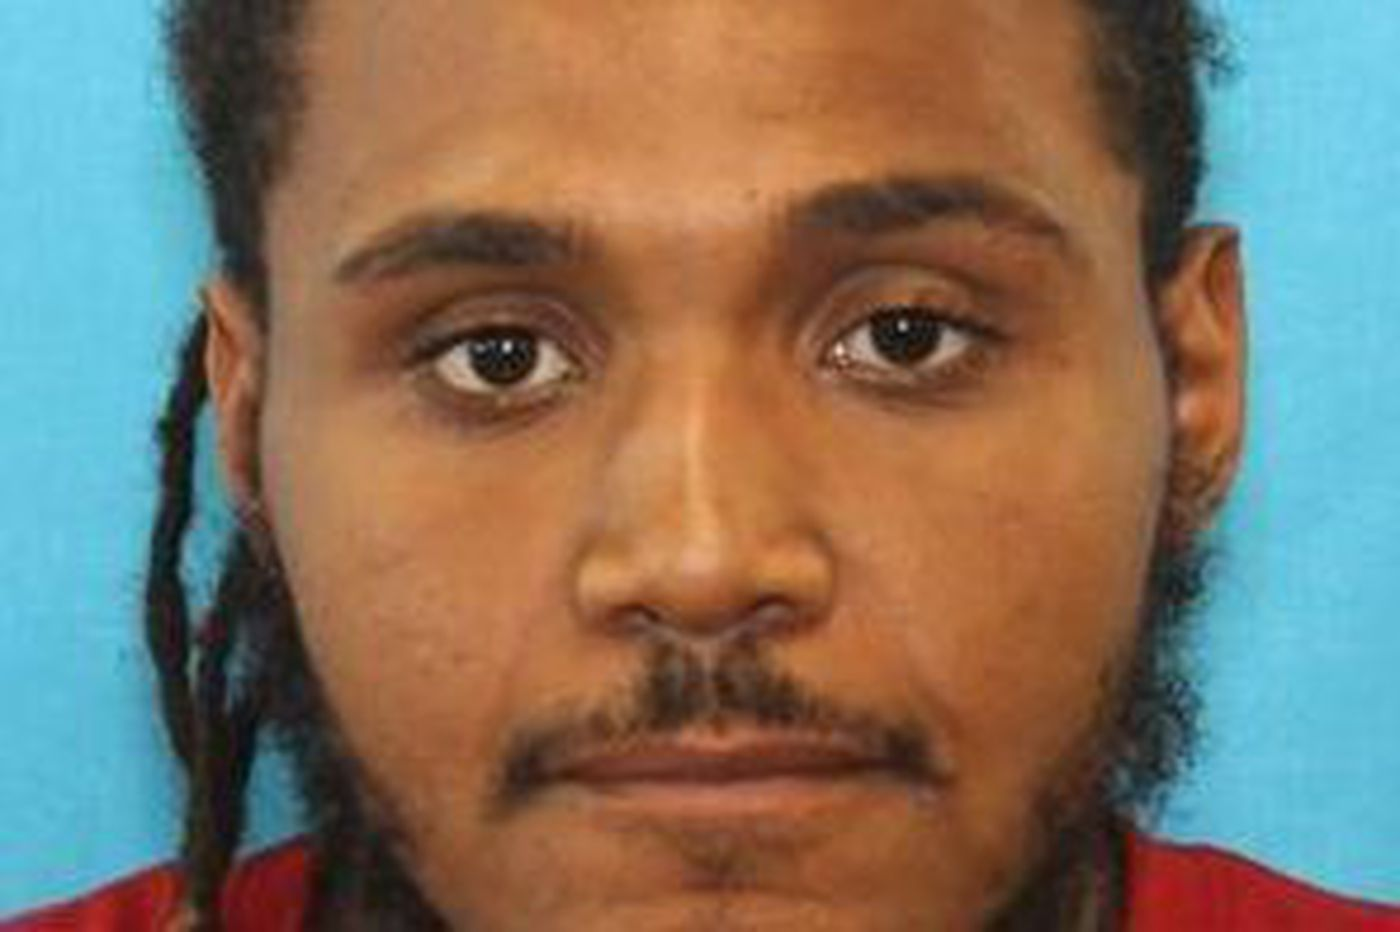 East Mount Airy man ordered to stand trial in shooting deaths of S.W. Philly couple last July